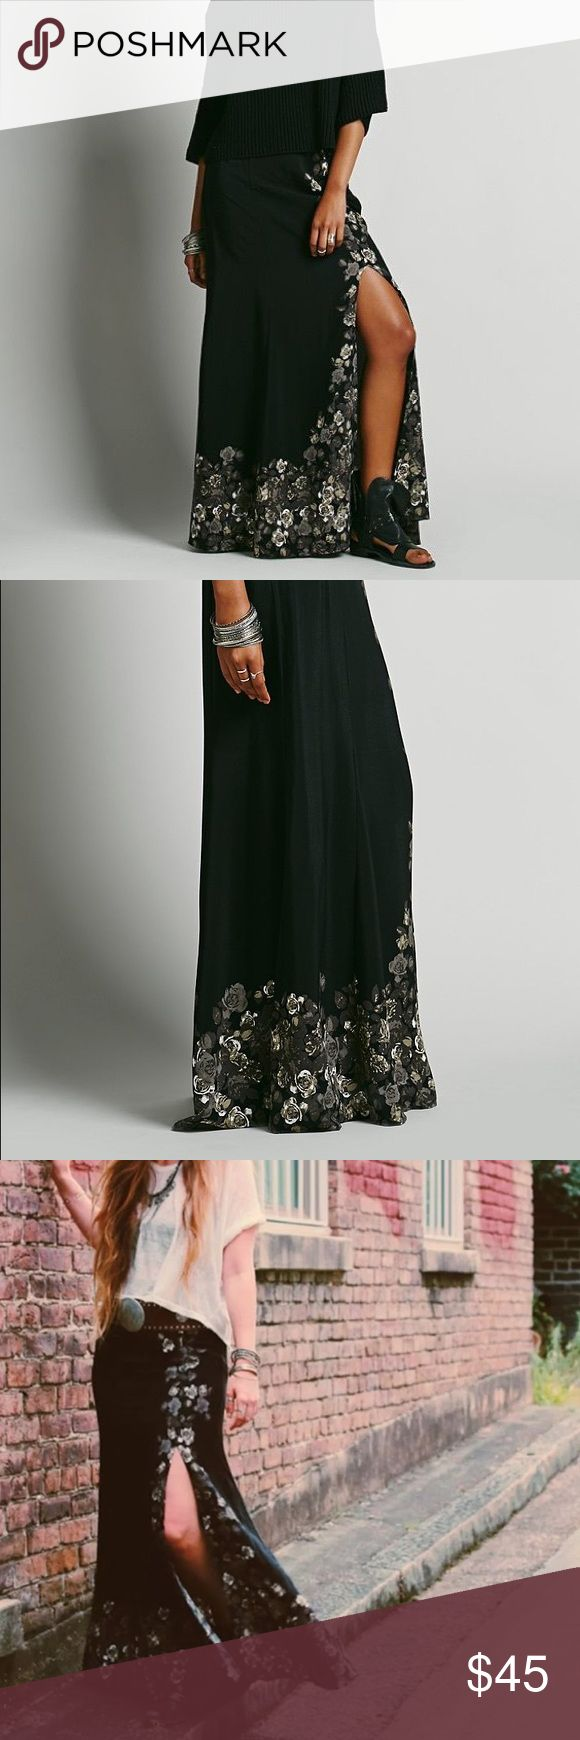 🌟Free People Long Maxi Floral Black Brown Skirt Worn once, in excellent condition. Size medium 8. 100% rayon. Free People Skirts Maxi